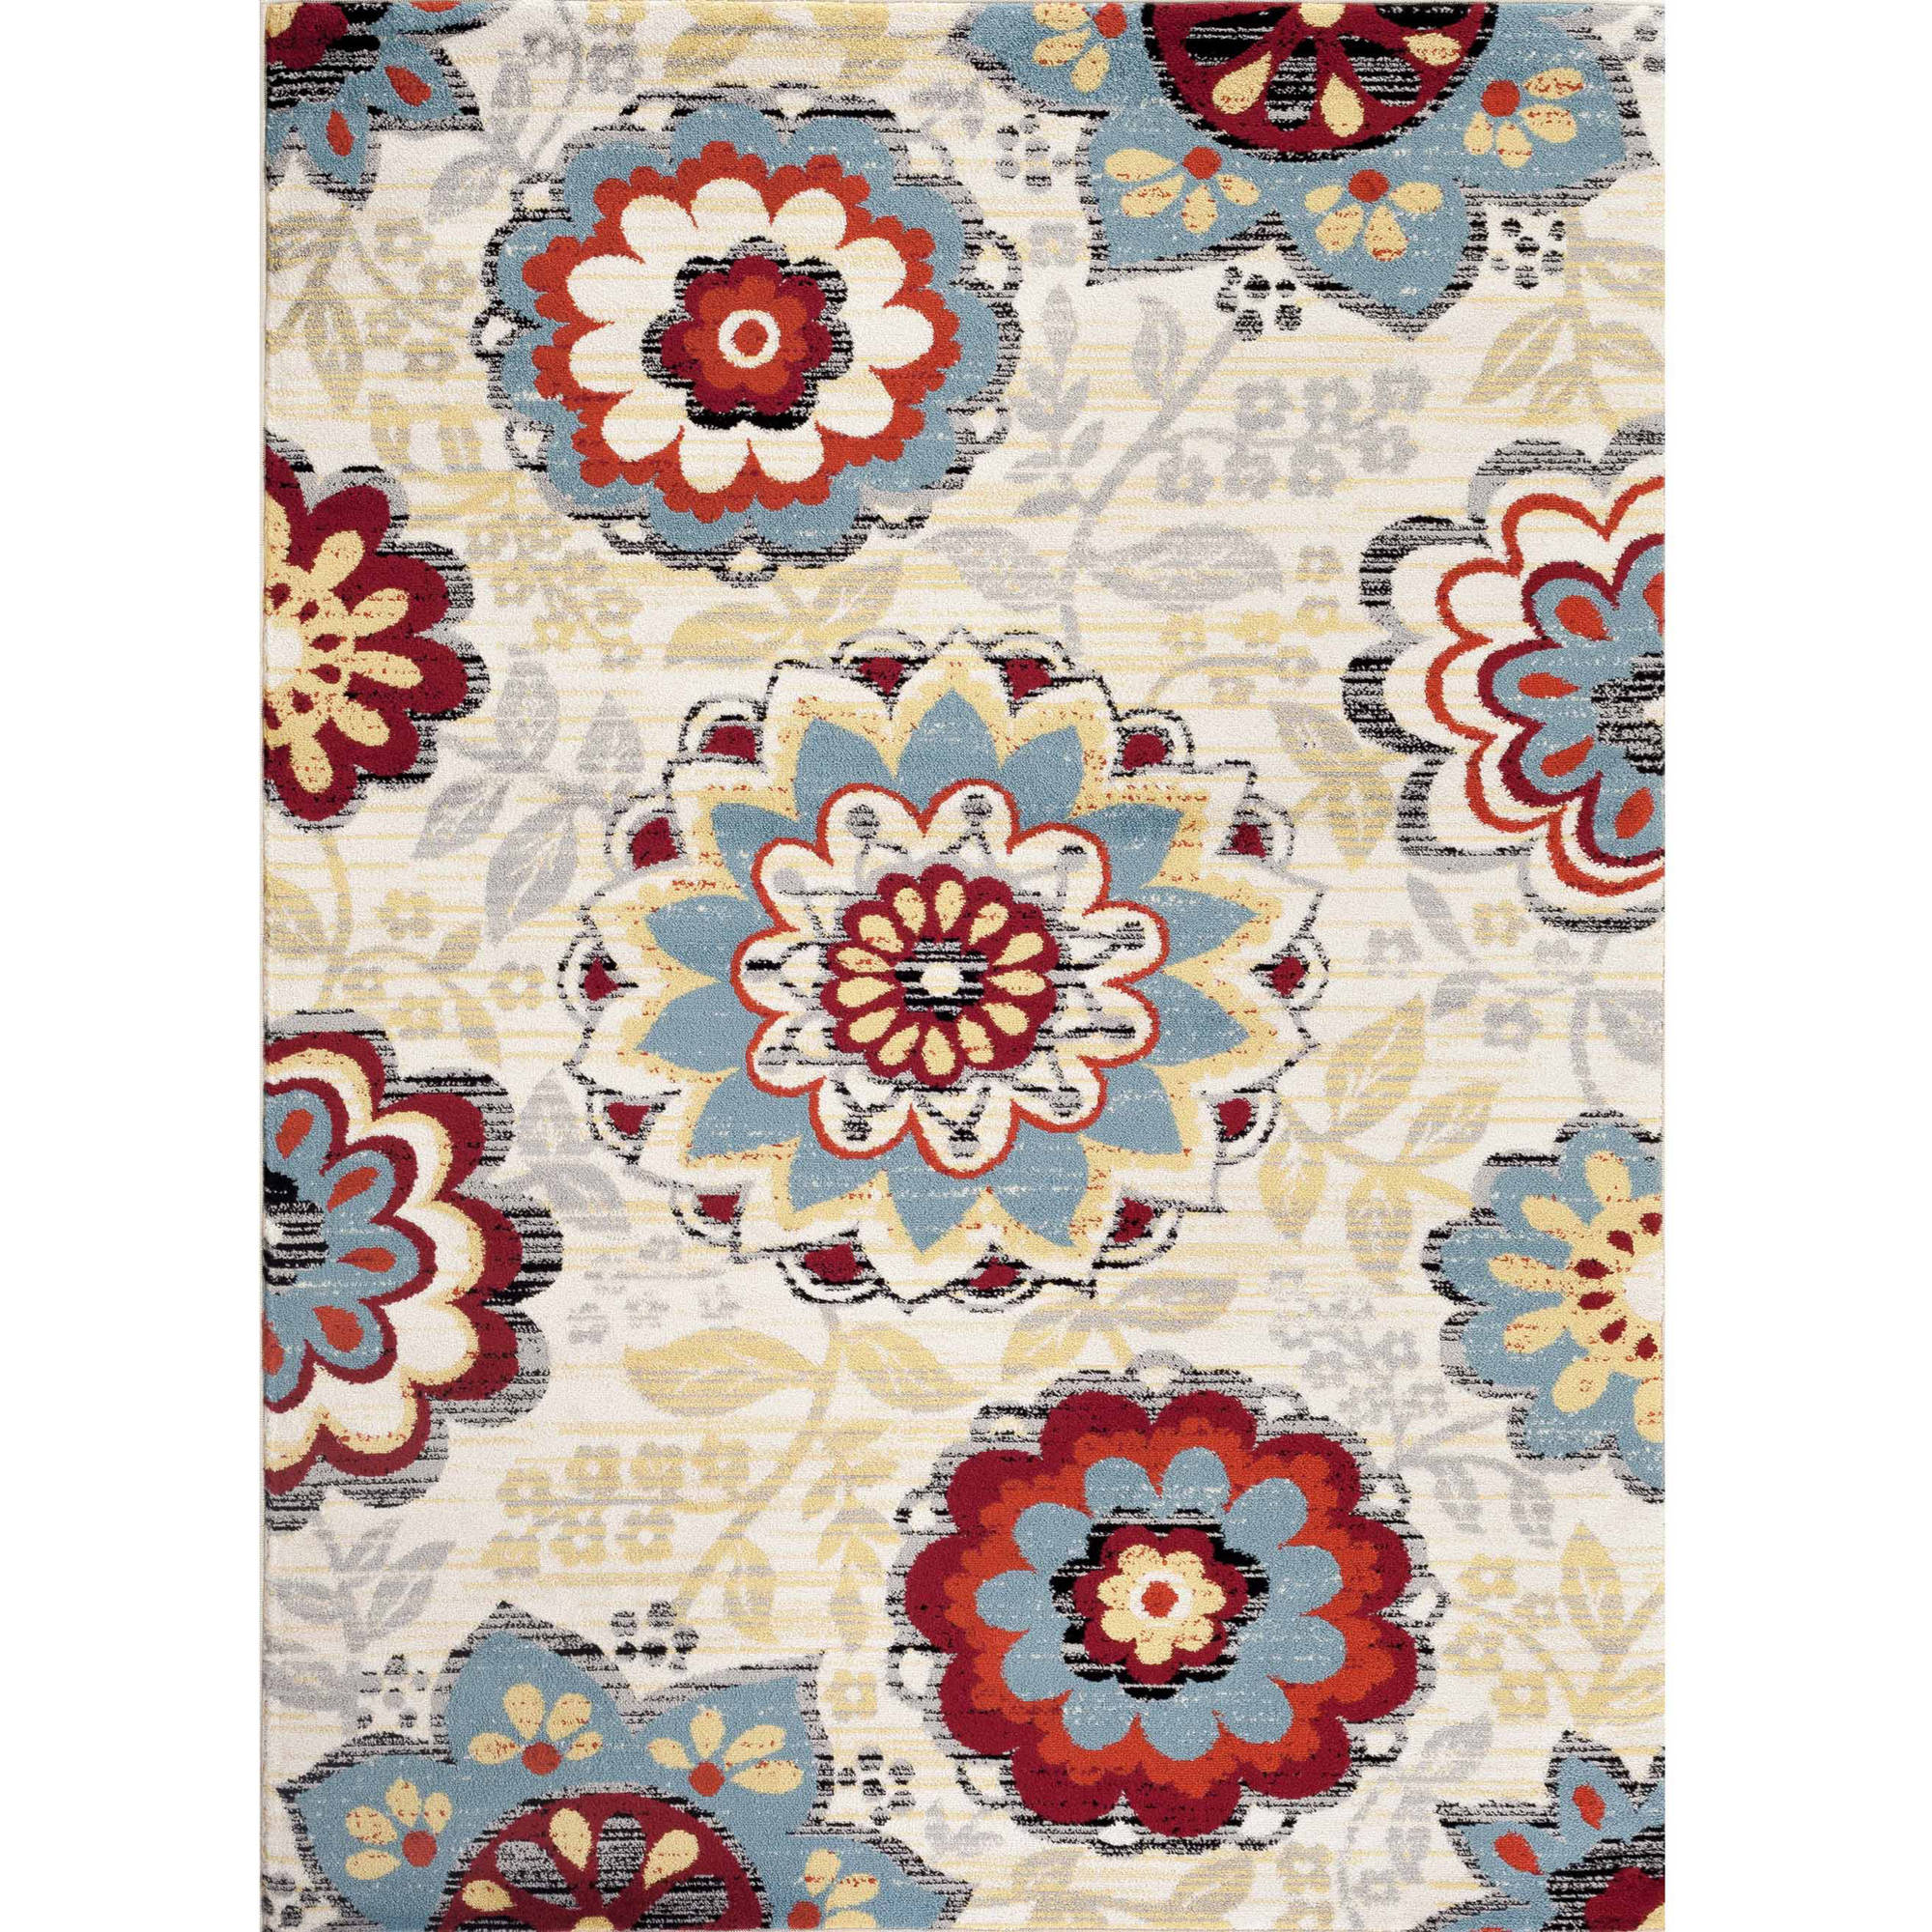 World Rug Gallery Transitional Large Floral Design Indoor Area Rug by World Rug Gallery